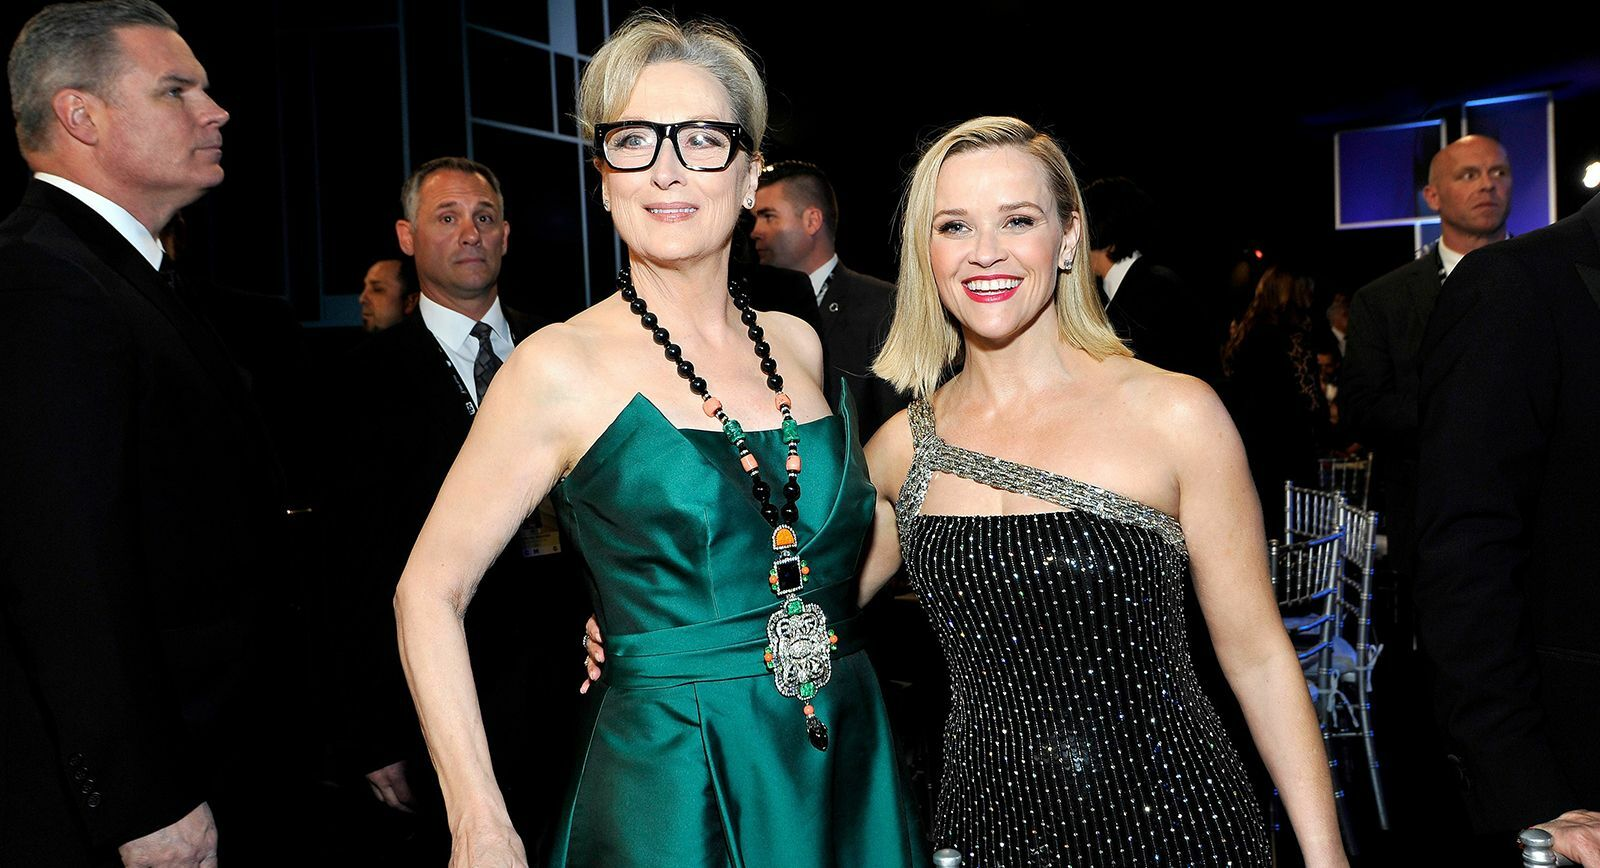 Meryl Streep and Reese Witherspoon at the SAG awards 2020